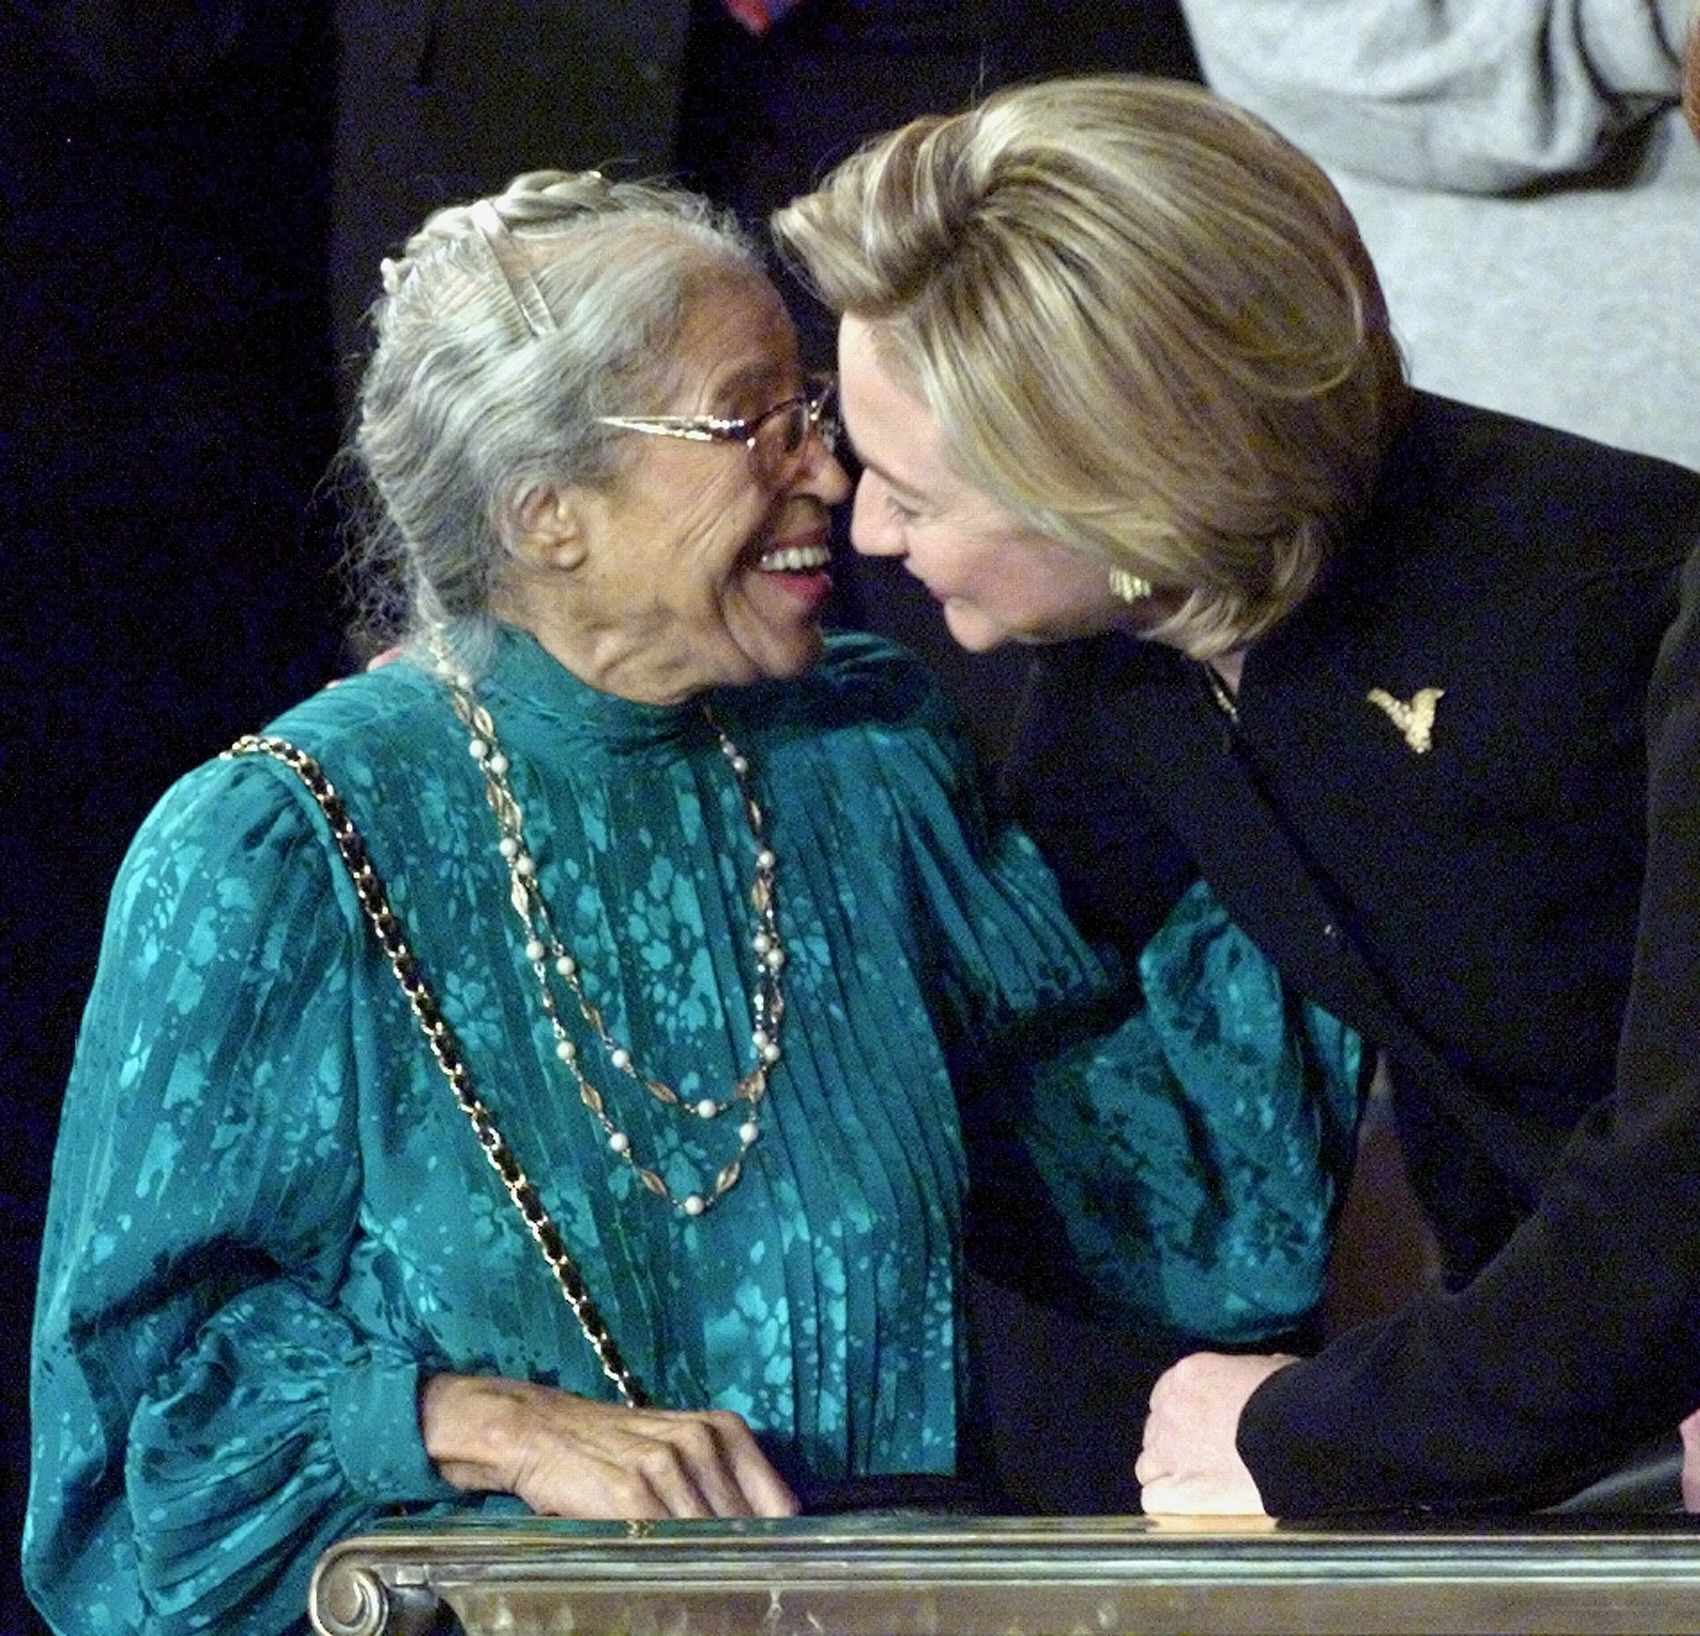 First Lady Hillary Clinton exchanges kisses from Rosa Parks prior to President Bill Clinton's State of the Union address on Capitol Hill, Jan. 19, 1999, in Washington. Clinton invited the Civil Rights icon as a guest while he sought support for his Initiative on Race.